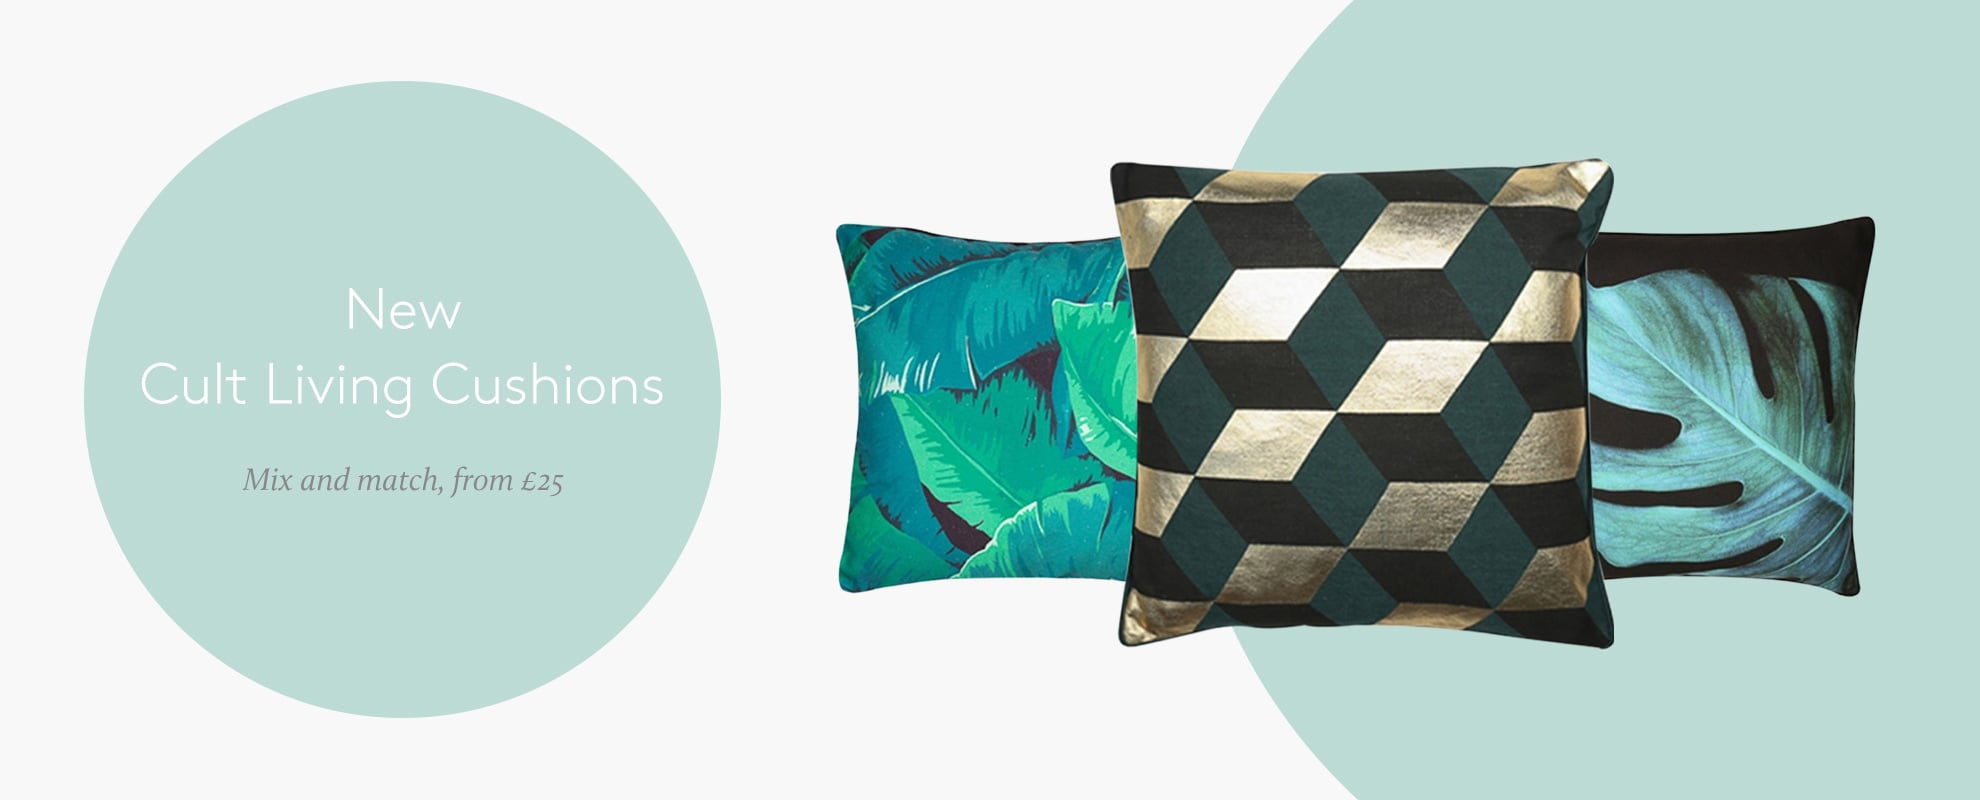 Cult Living Cushions